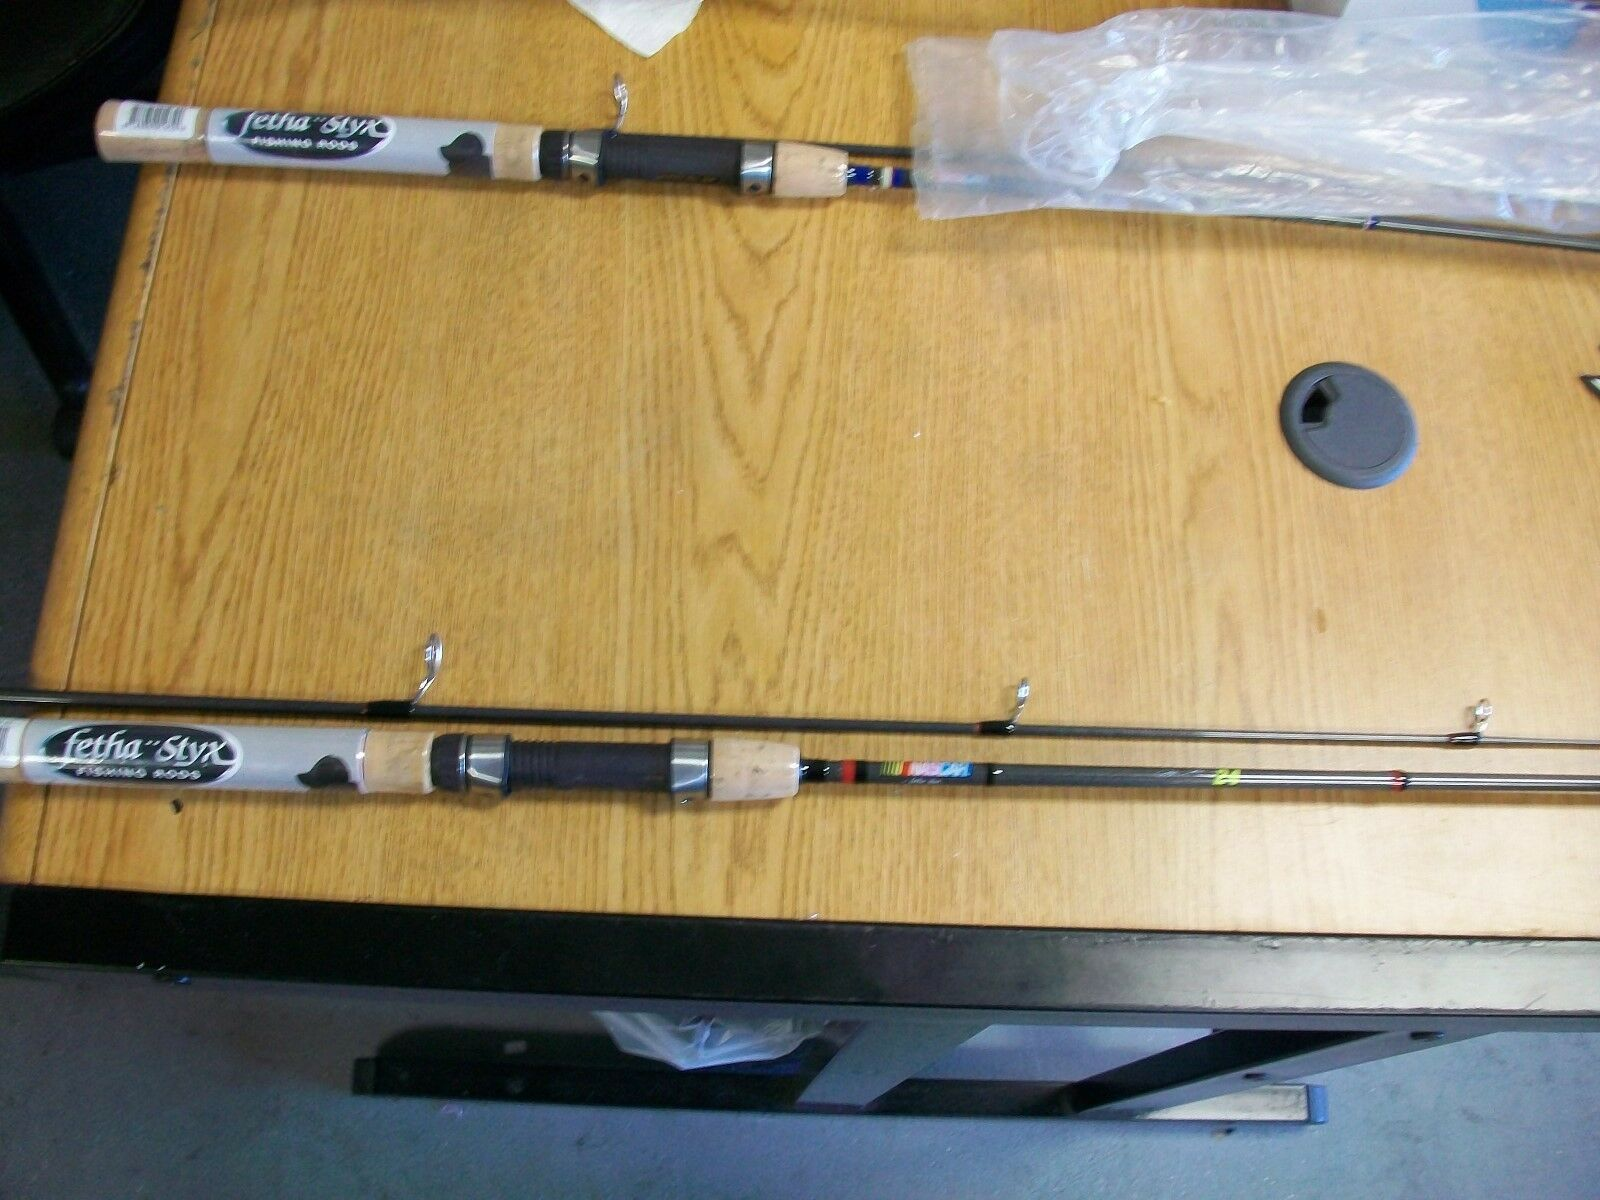 Fetha Styx  Nascar spinning rod Jeff Gordon  at the lowest price